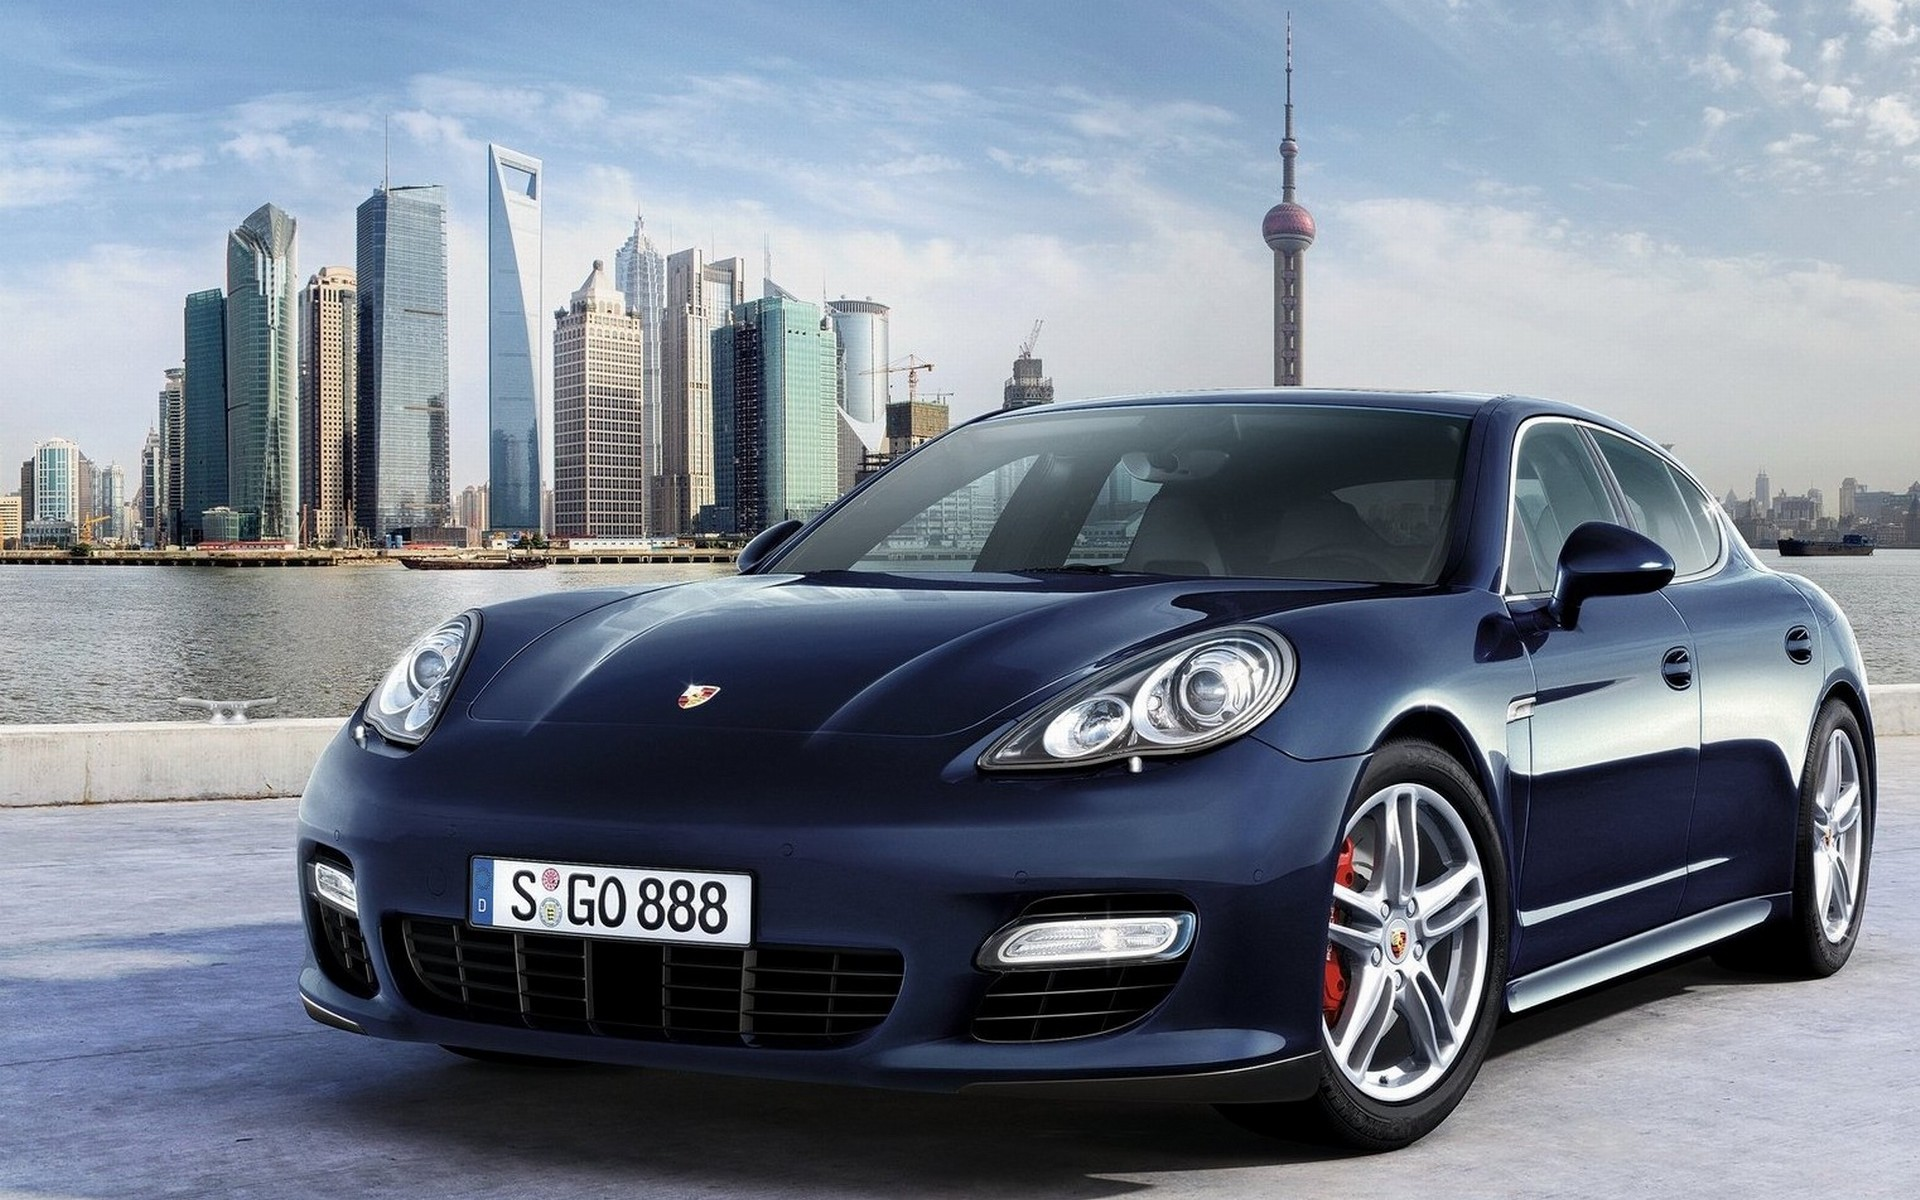 1920x1200 Porsche Panamera Desktop Pc And Mac Wallpaper